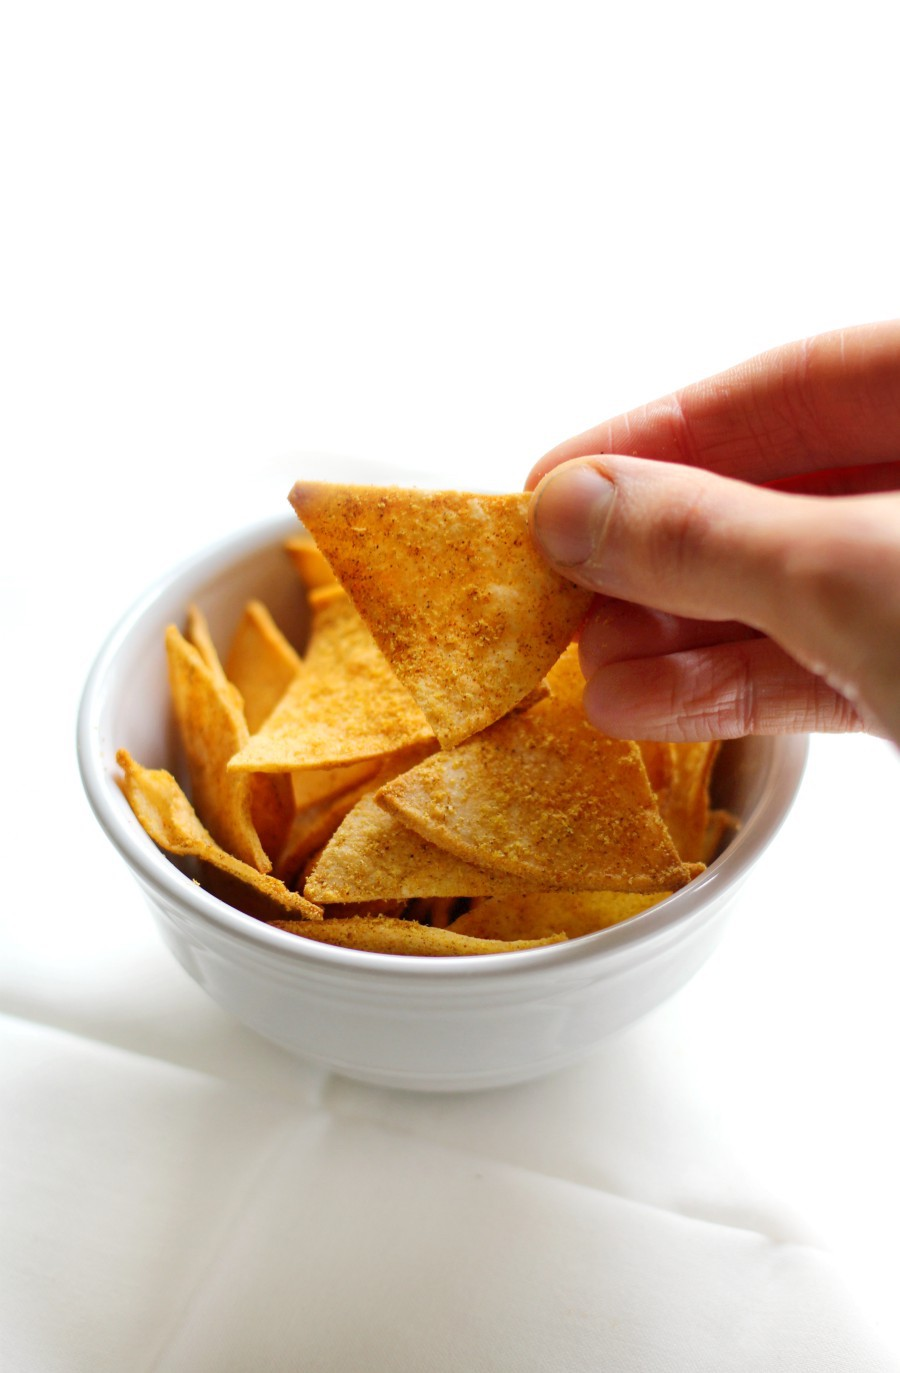 hand-grab-vegan-dorito-from-white-bowl